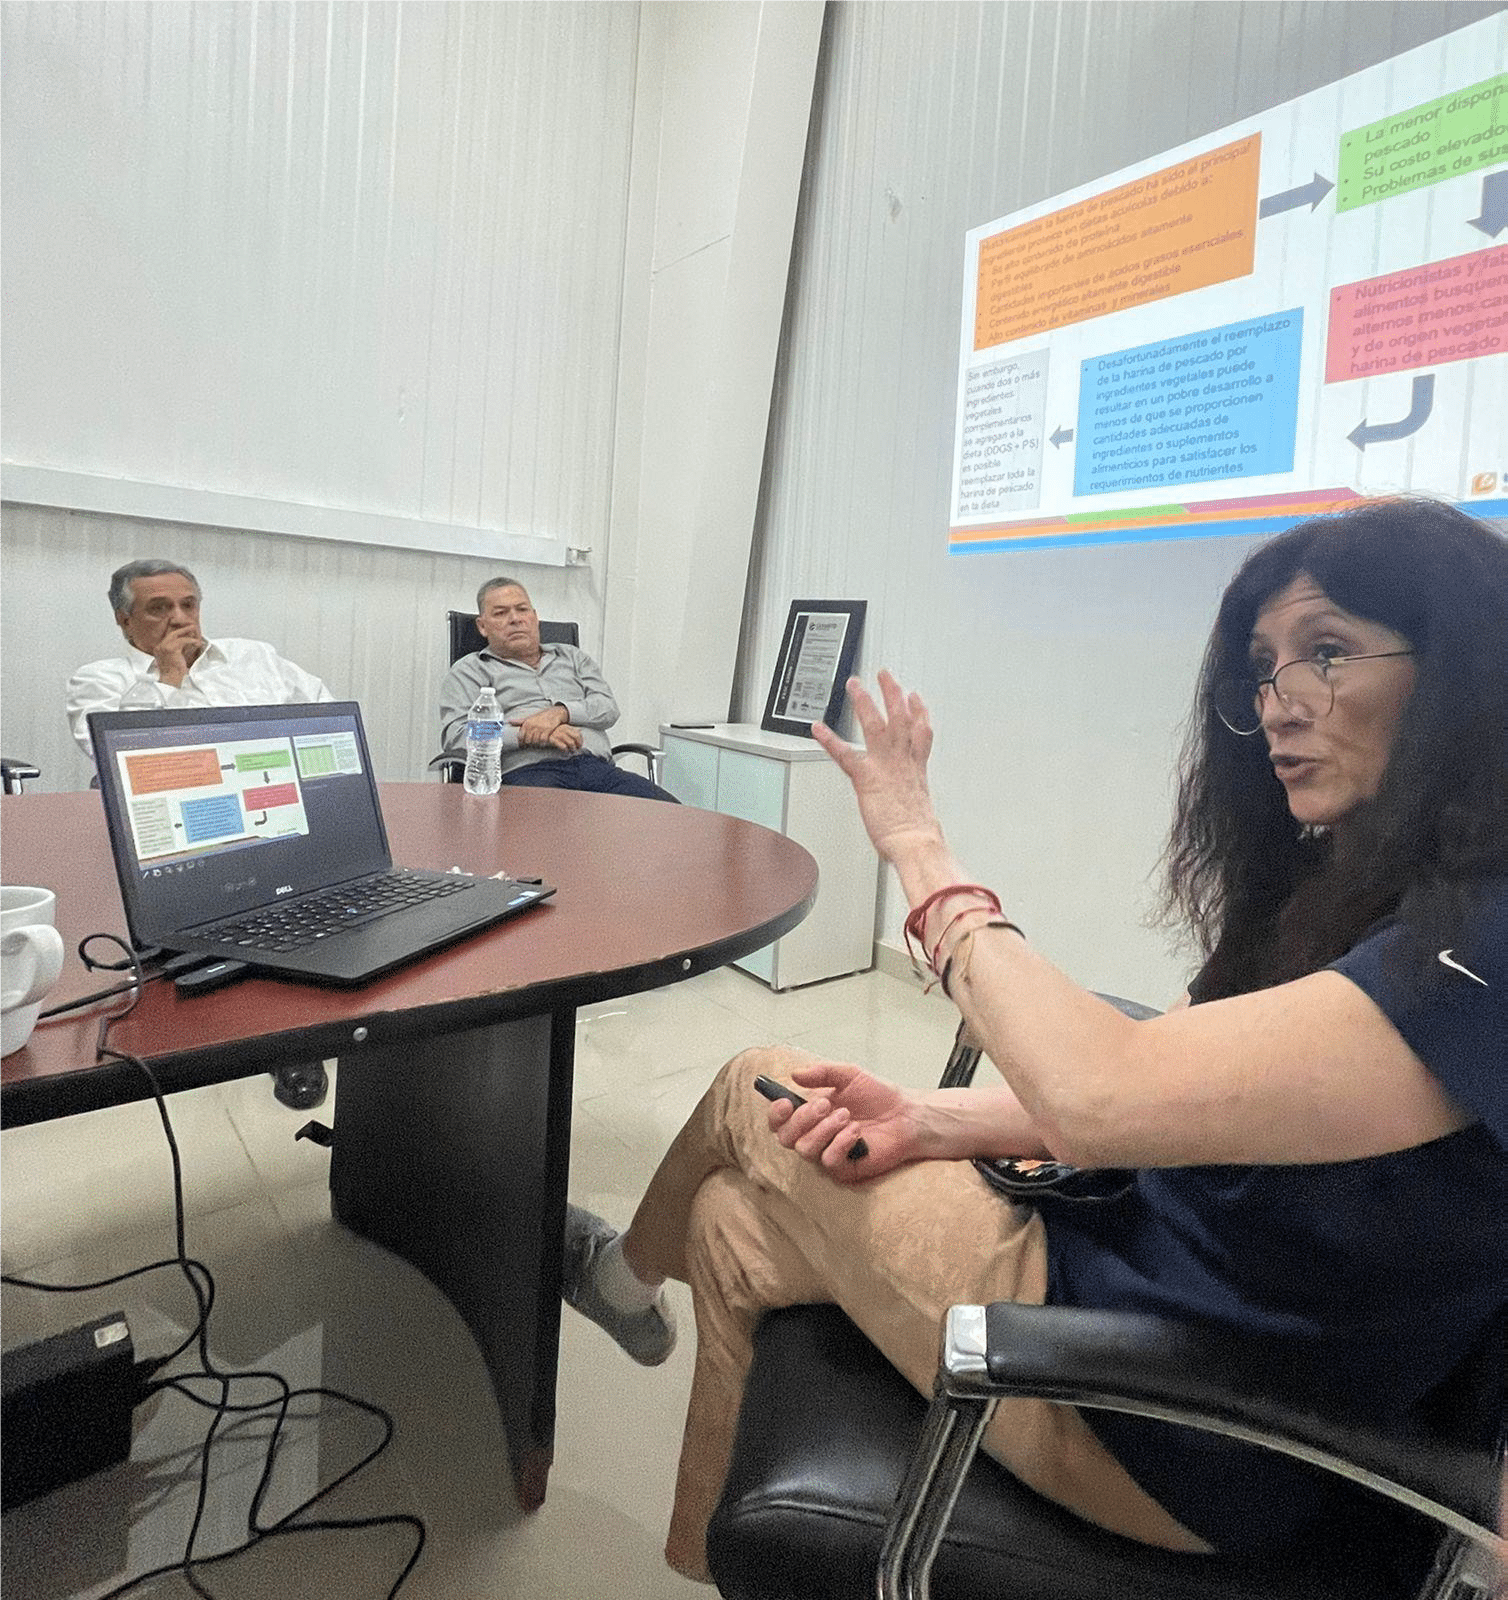 While meeting with GAM, Esqueda explained the advantages of using HiPro DDGS compared to fish meal. Fish meal is not as readily available, can be expensive and is not always sustainable.